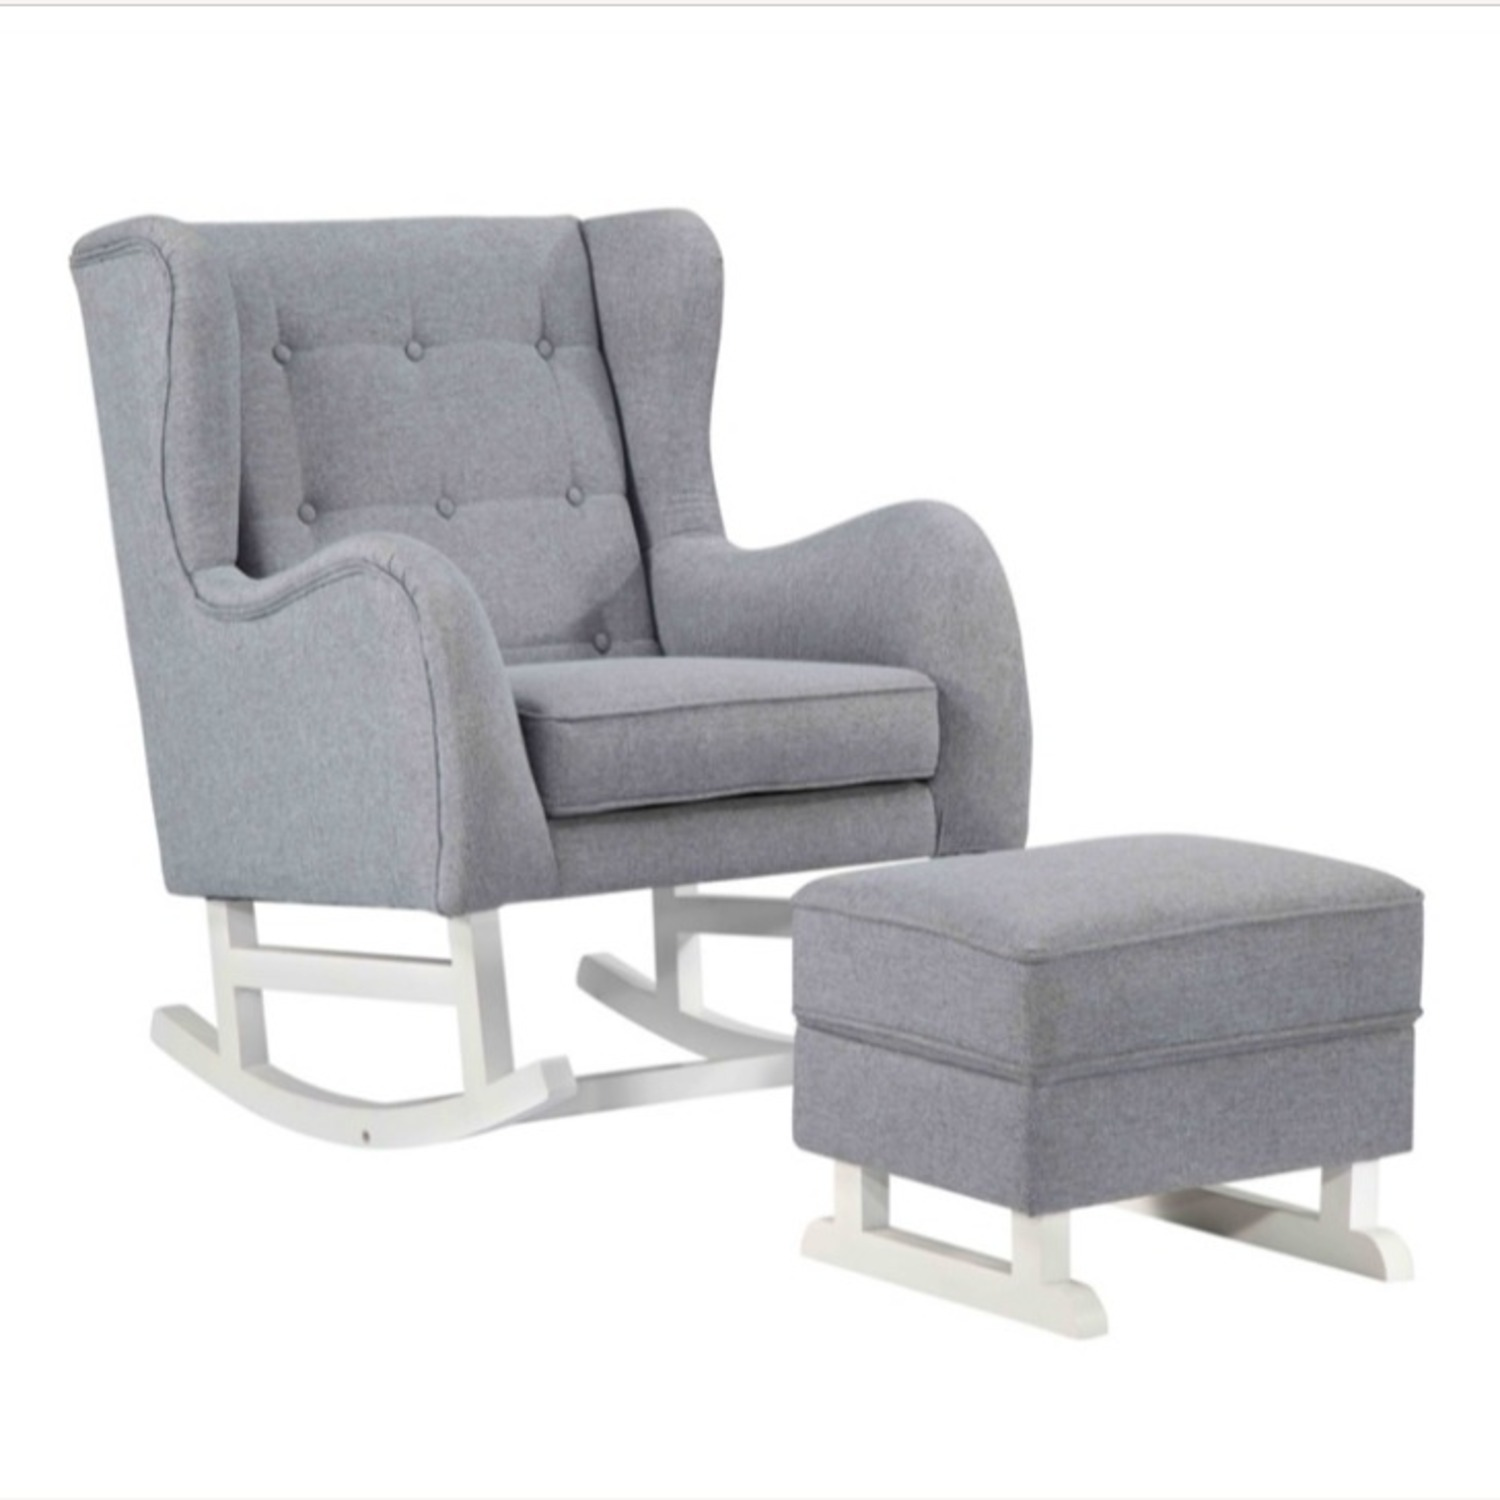 Baby Lounge Chair & Ottoman In Gray Fabric - image-0